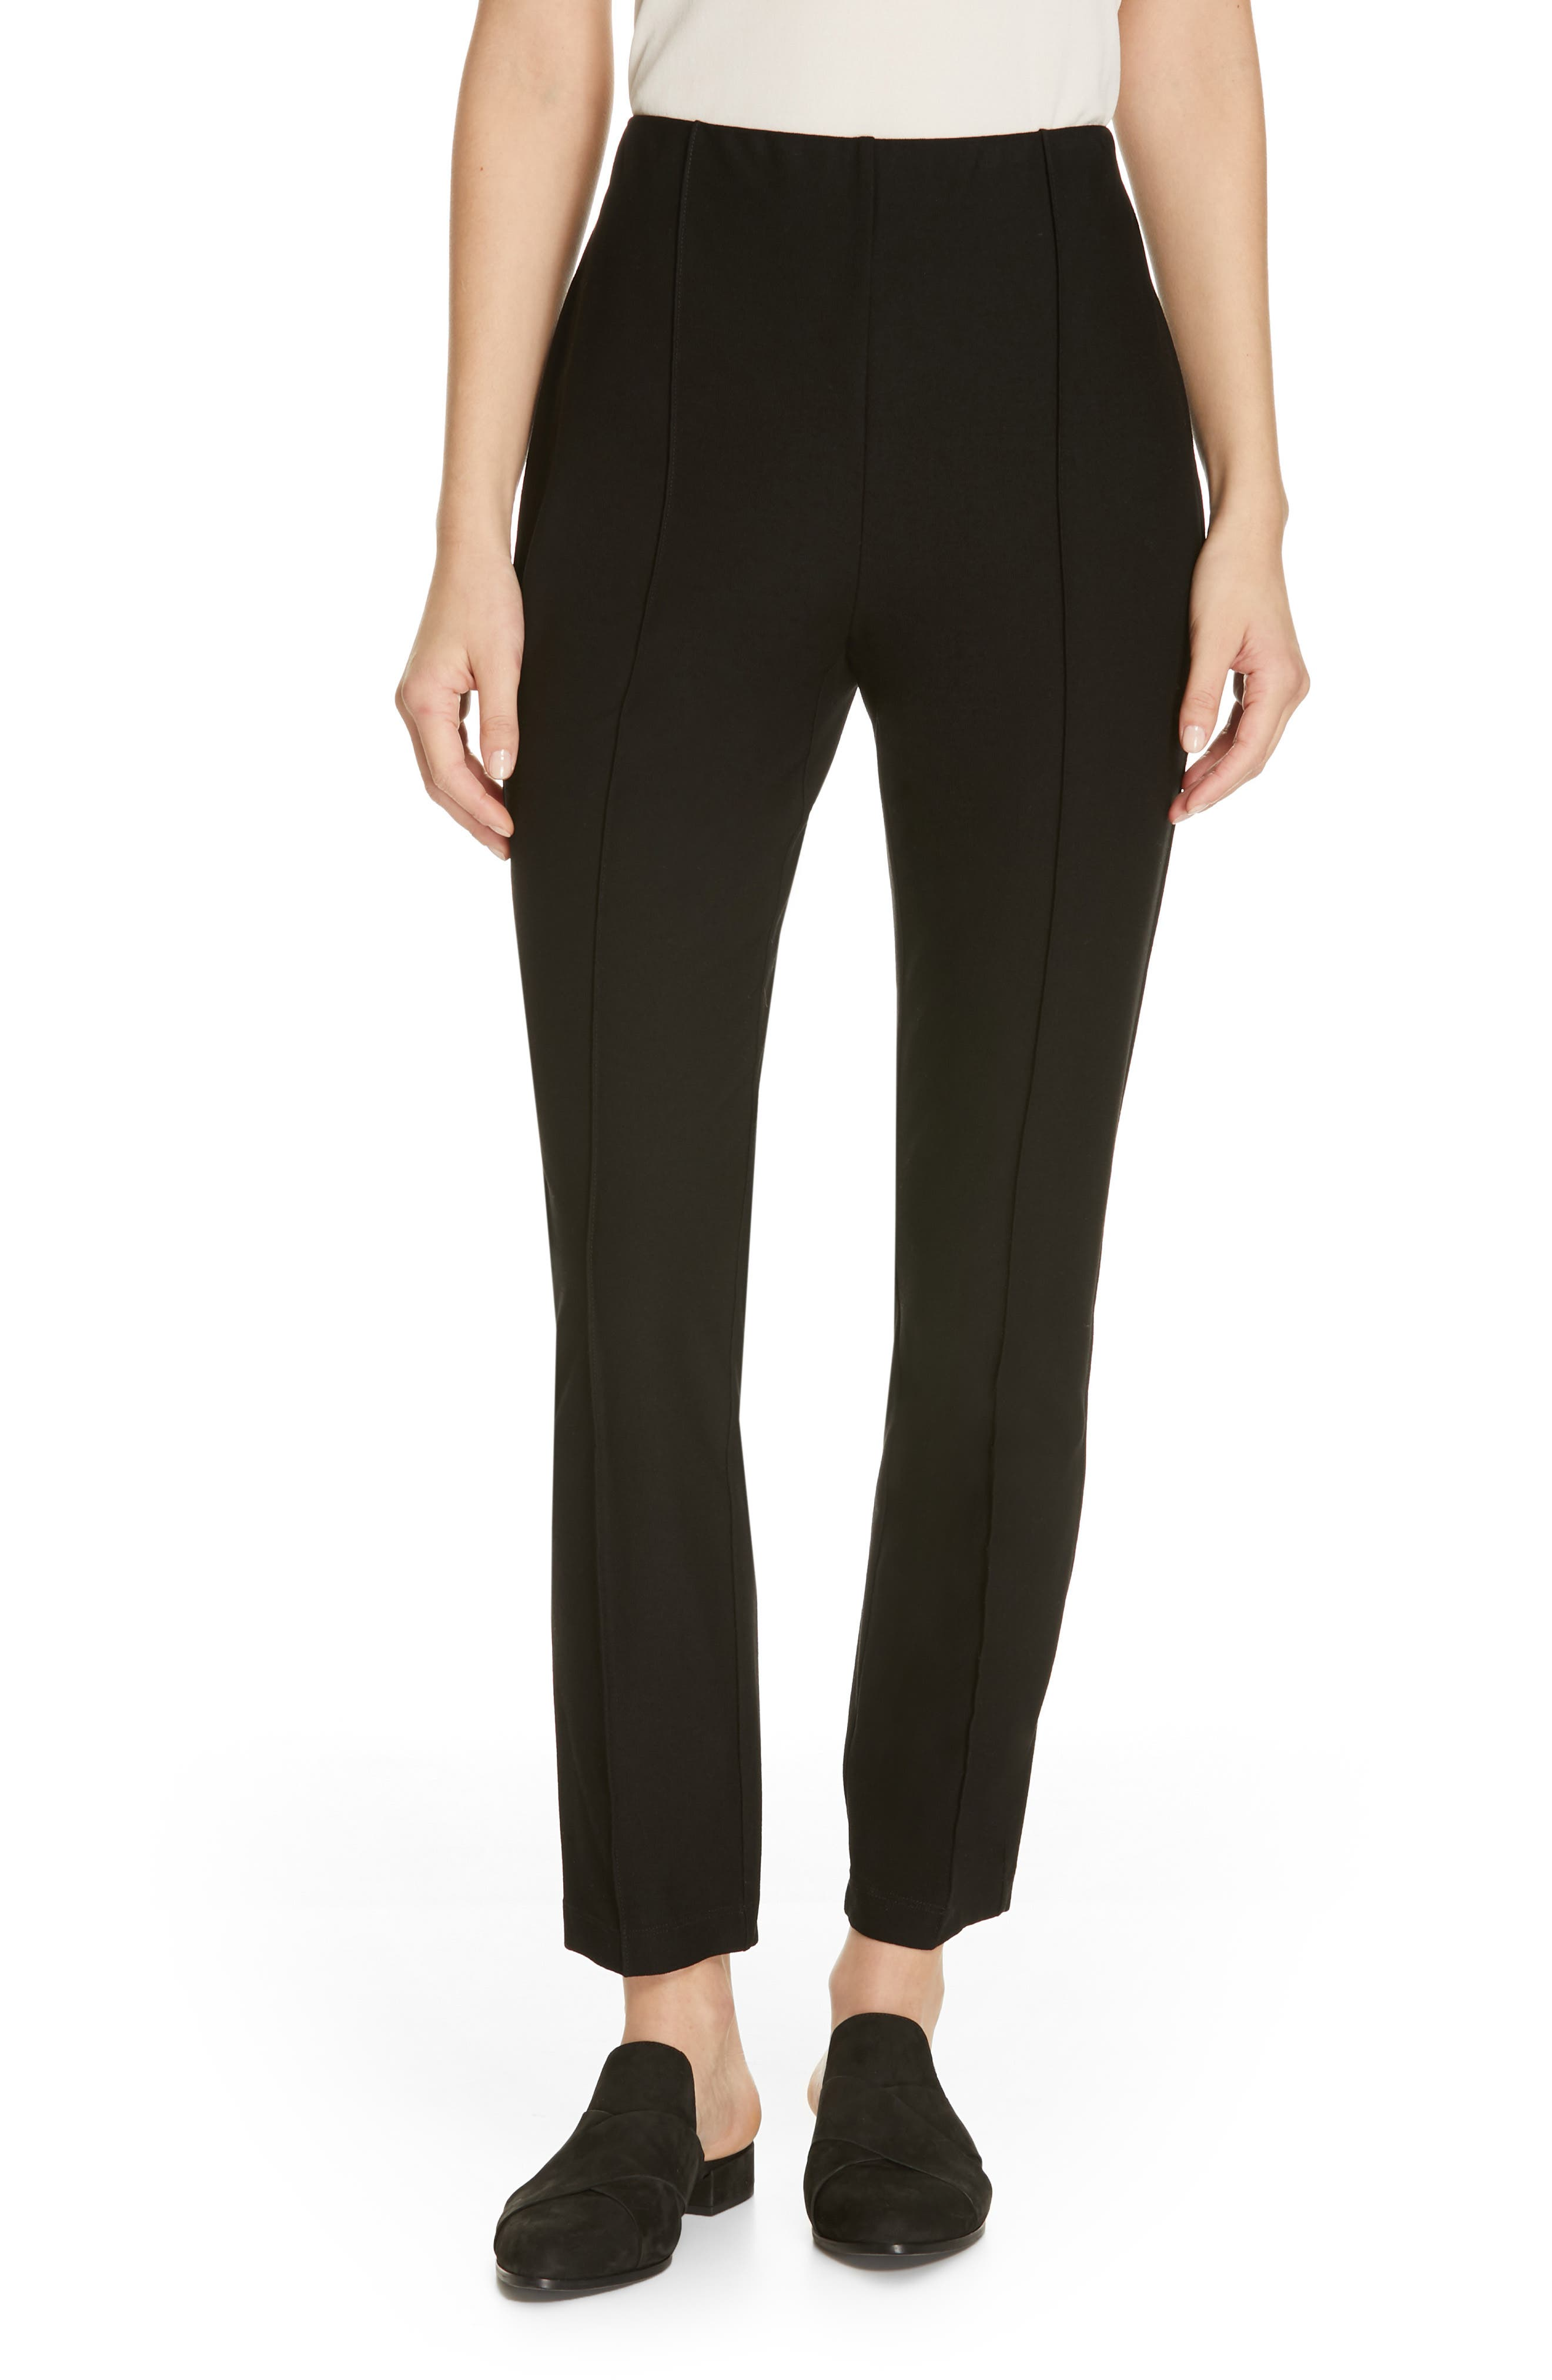 EILEEN FISHER, High Waist Slim Ankle Pants, Main thumbnail 1, color, 001